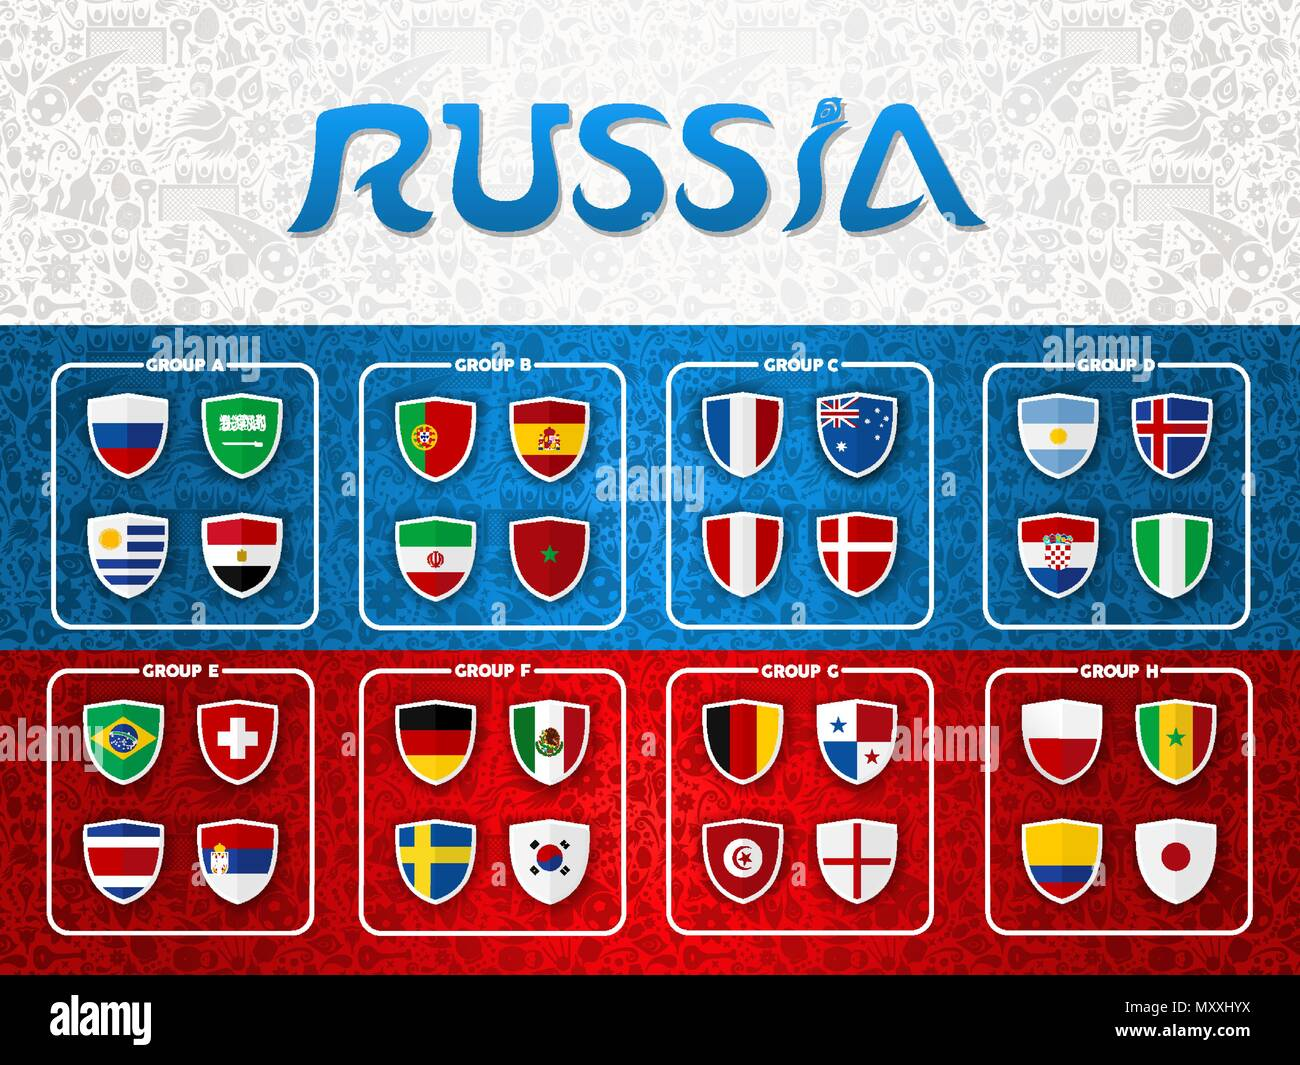 soccer event team list template special sport group schedule with